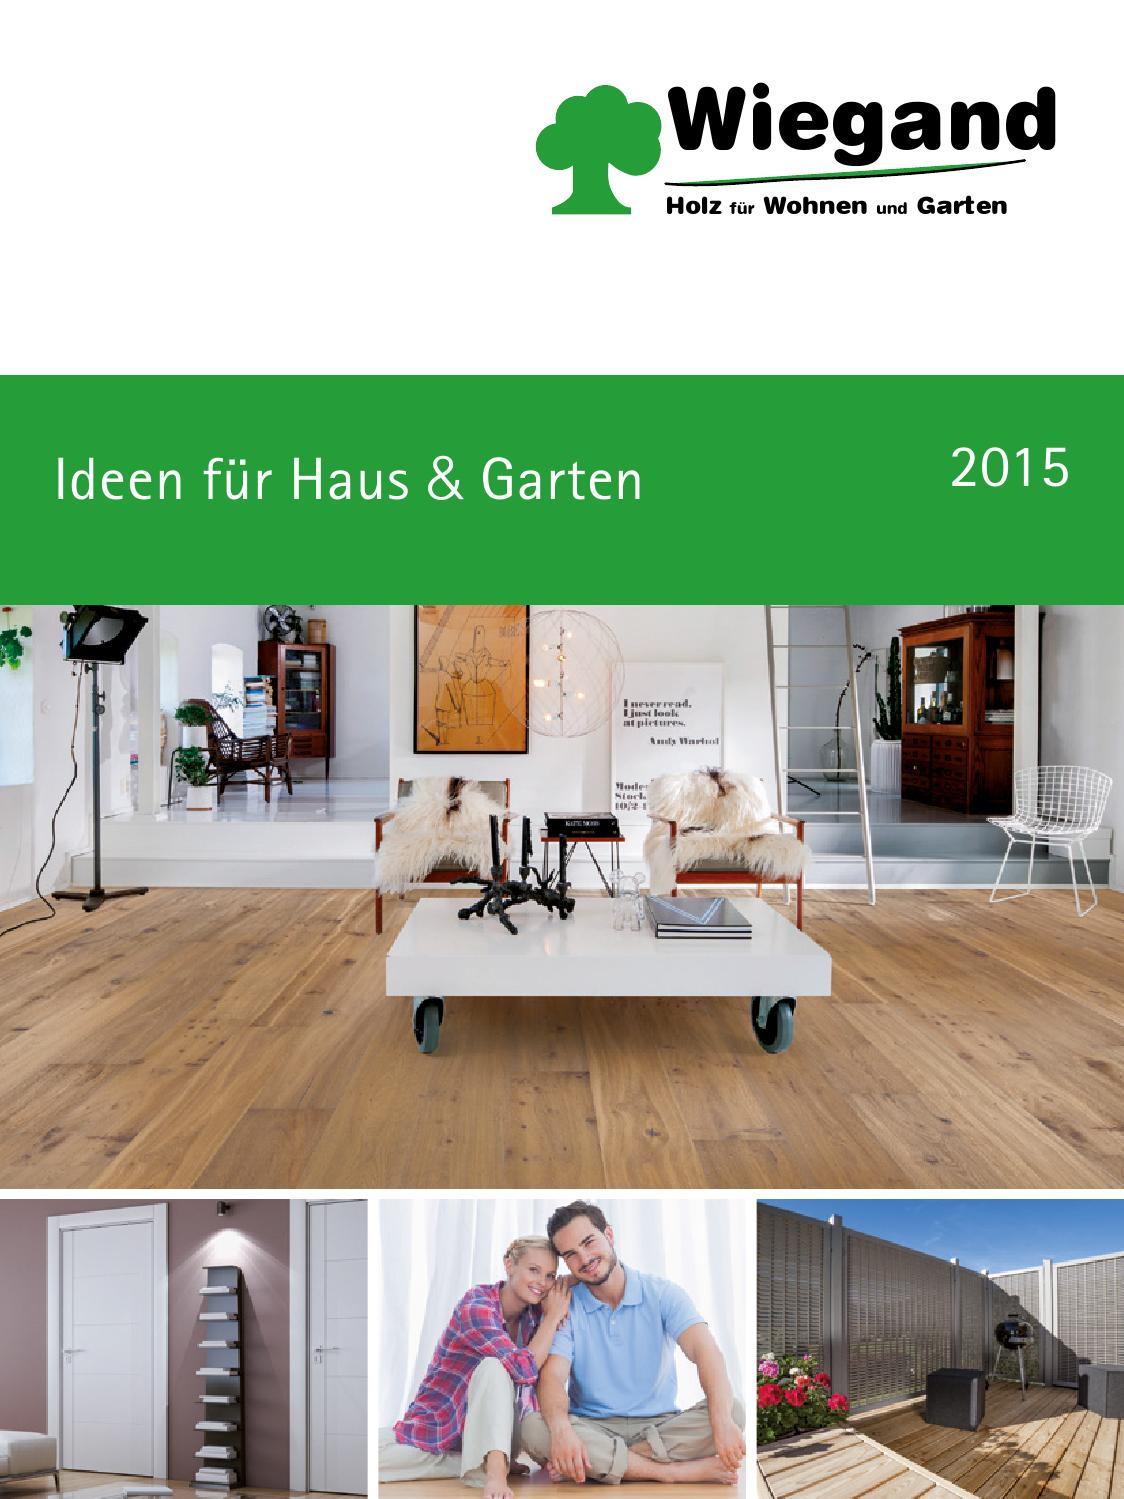 holz wiegand by kaiser design issuu. Black Bedroom Furniture Sets. Home Design Ideas